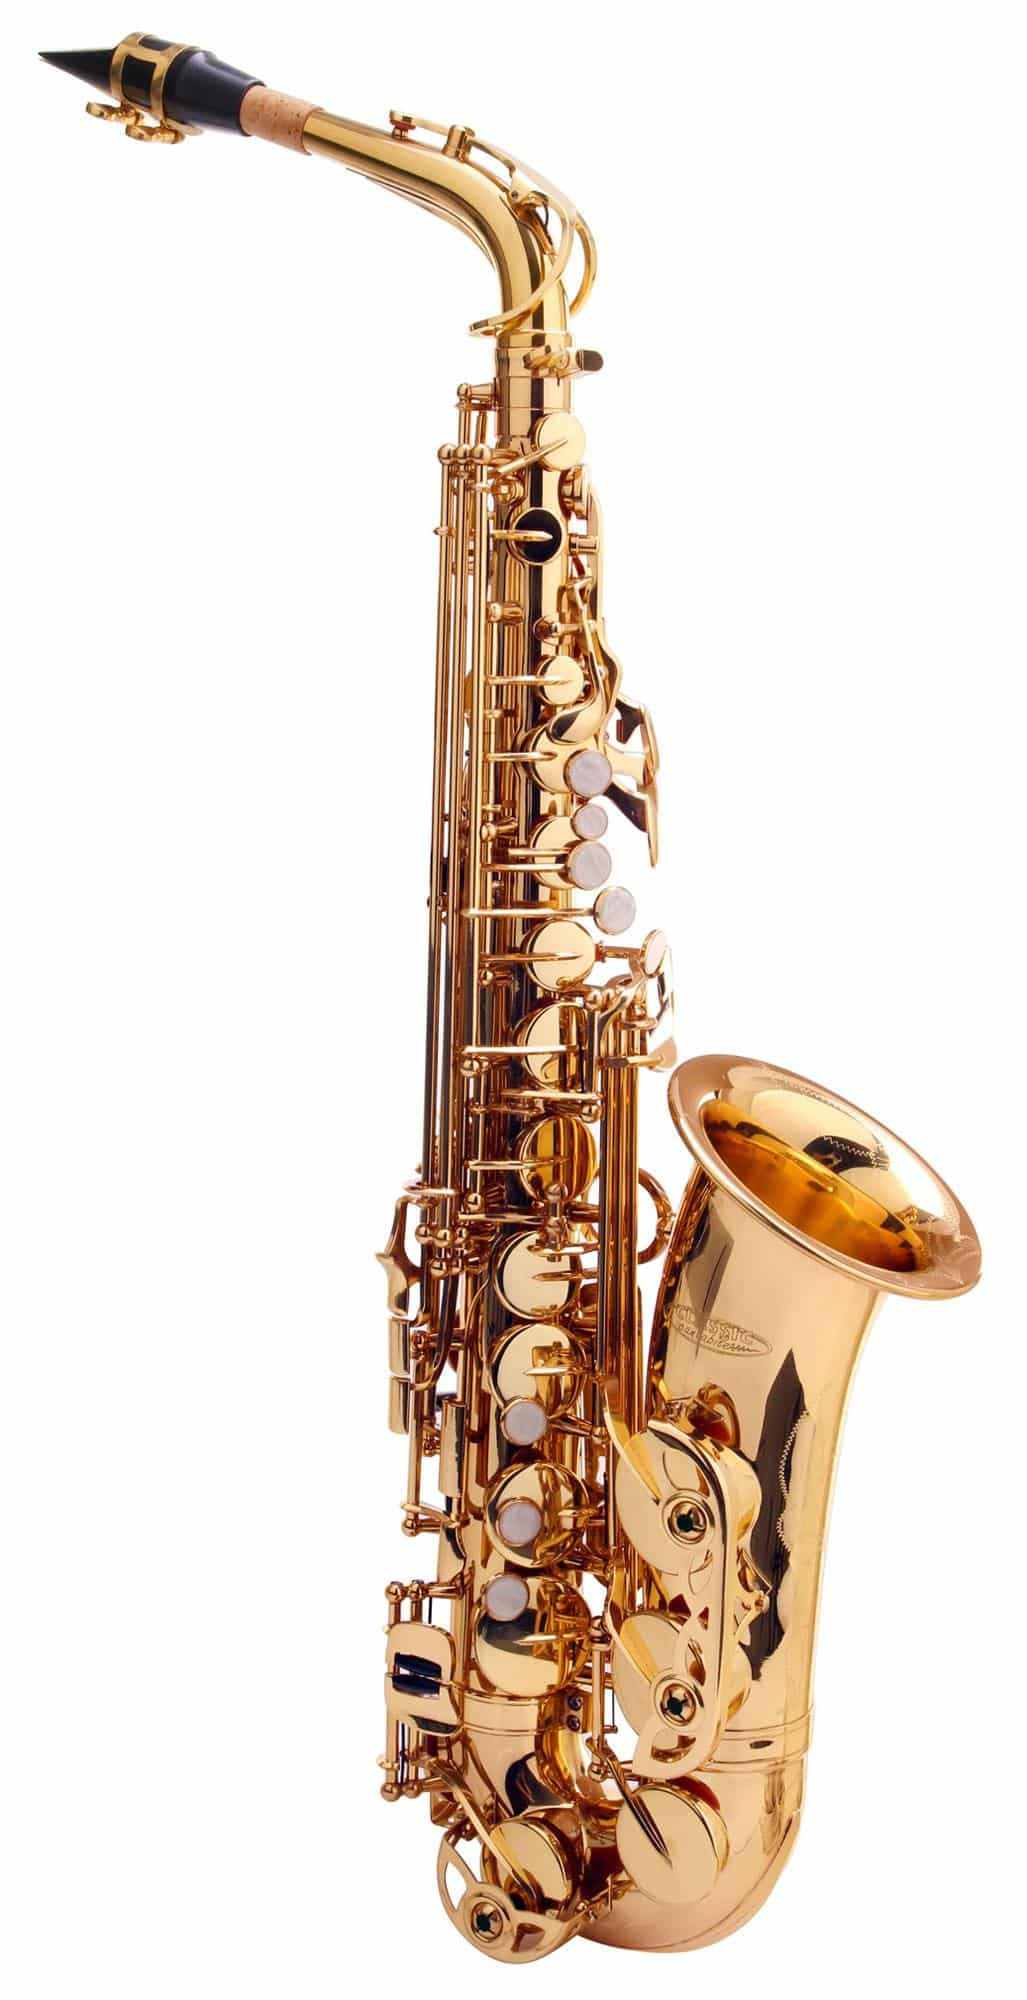 Saxophone - Classic Cantabile Winds AS 450 Eb Altsaxophon - Onlineshop Musikhaus Kirstein